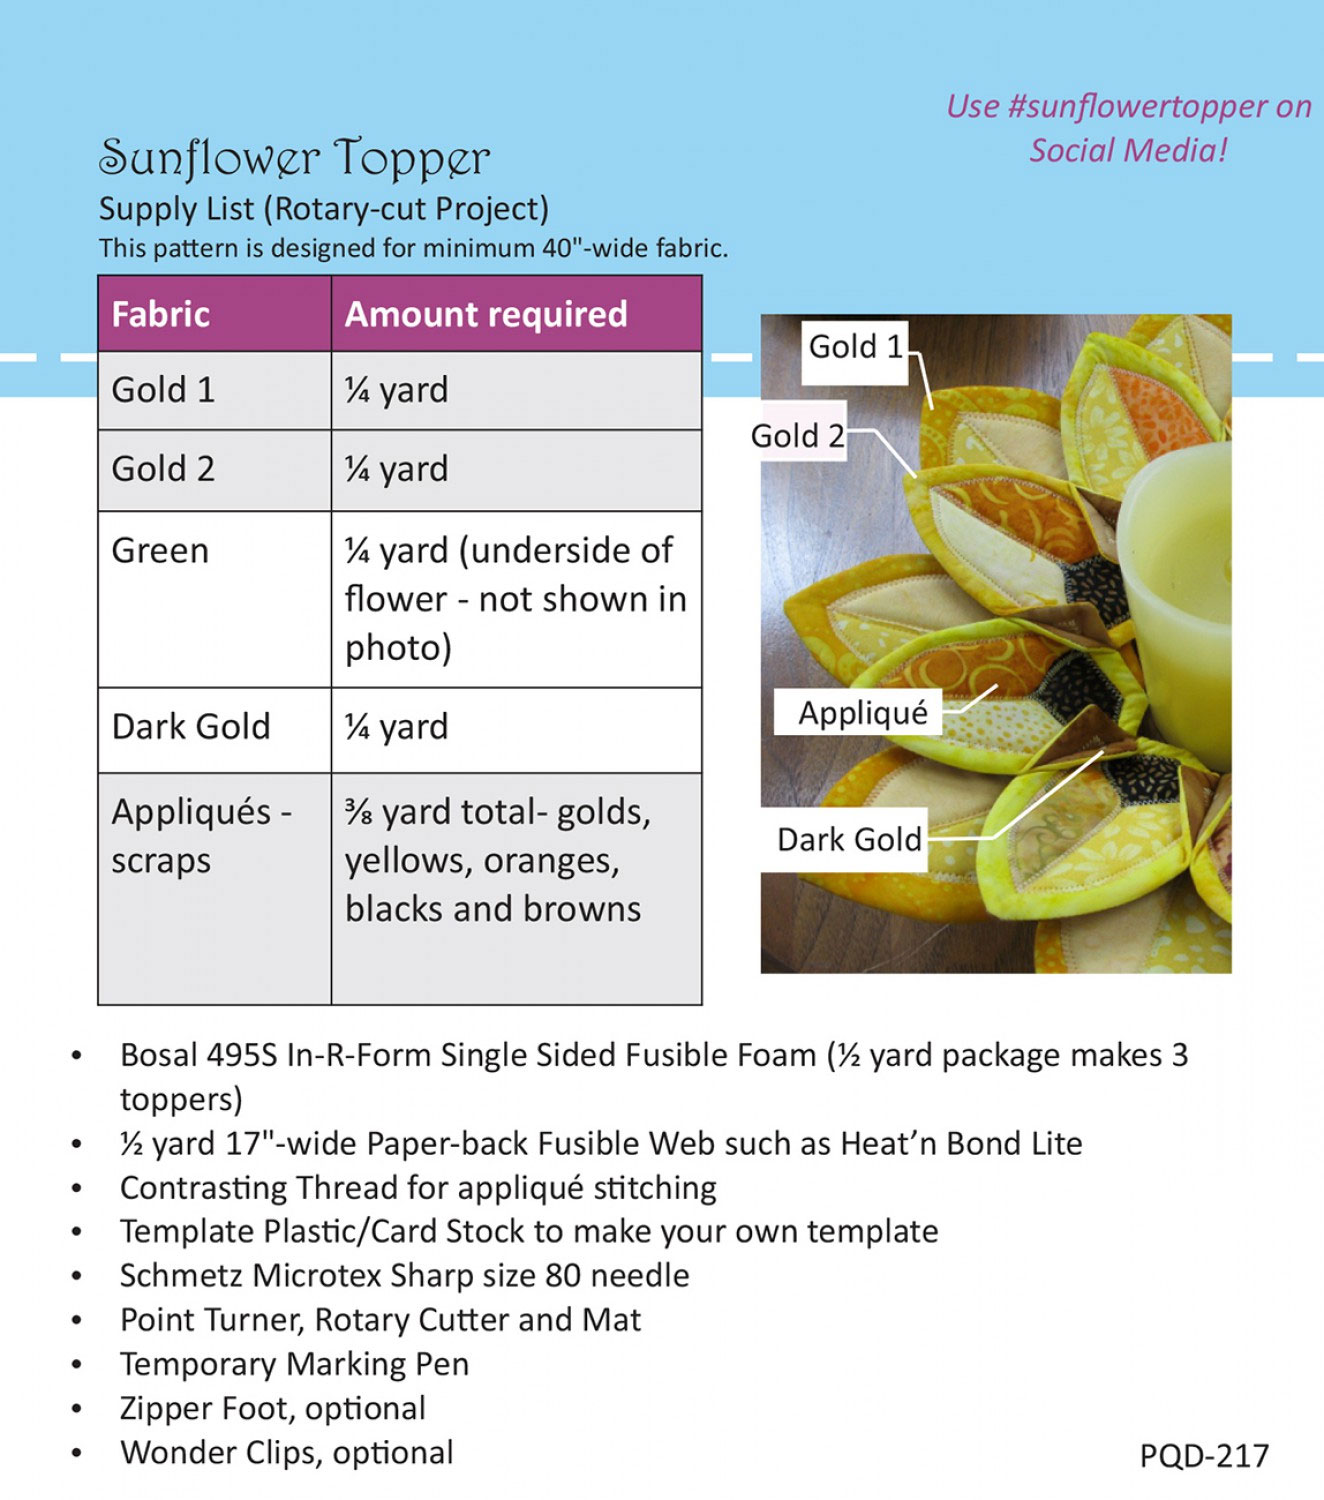 Sunflower-Table-Topper-sewing-pattern-Poorhouse-Designs-back